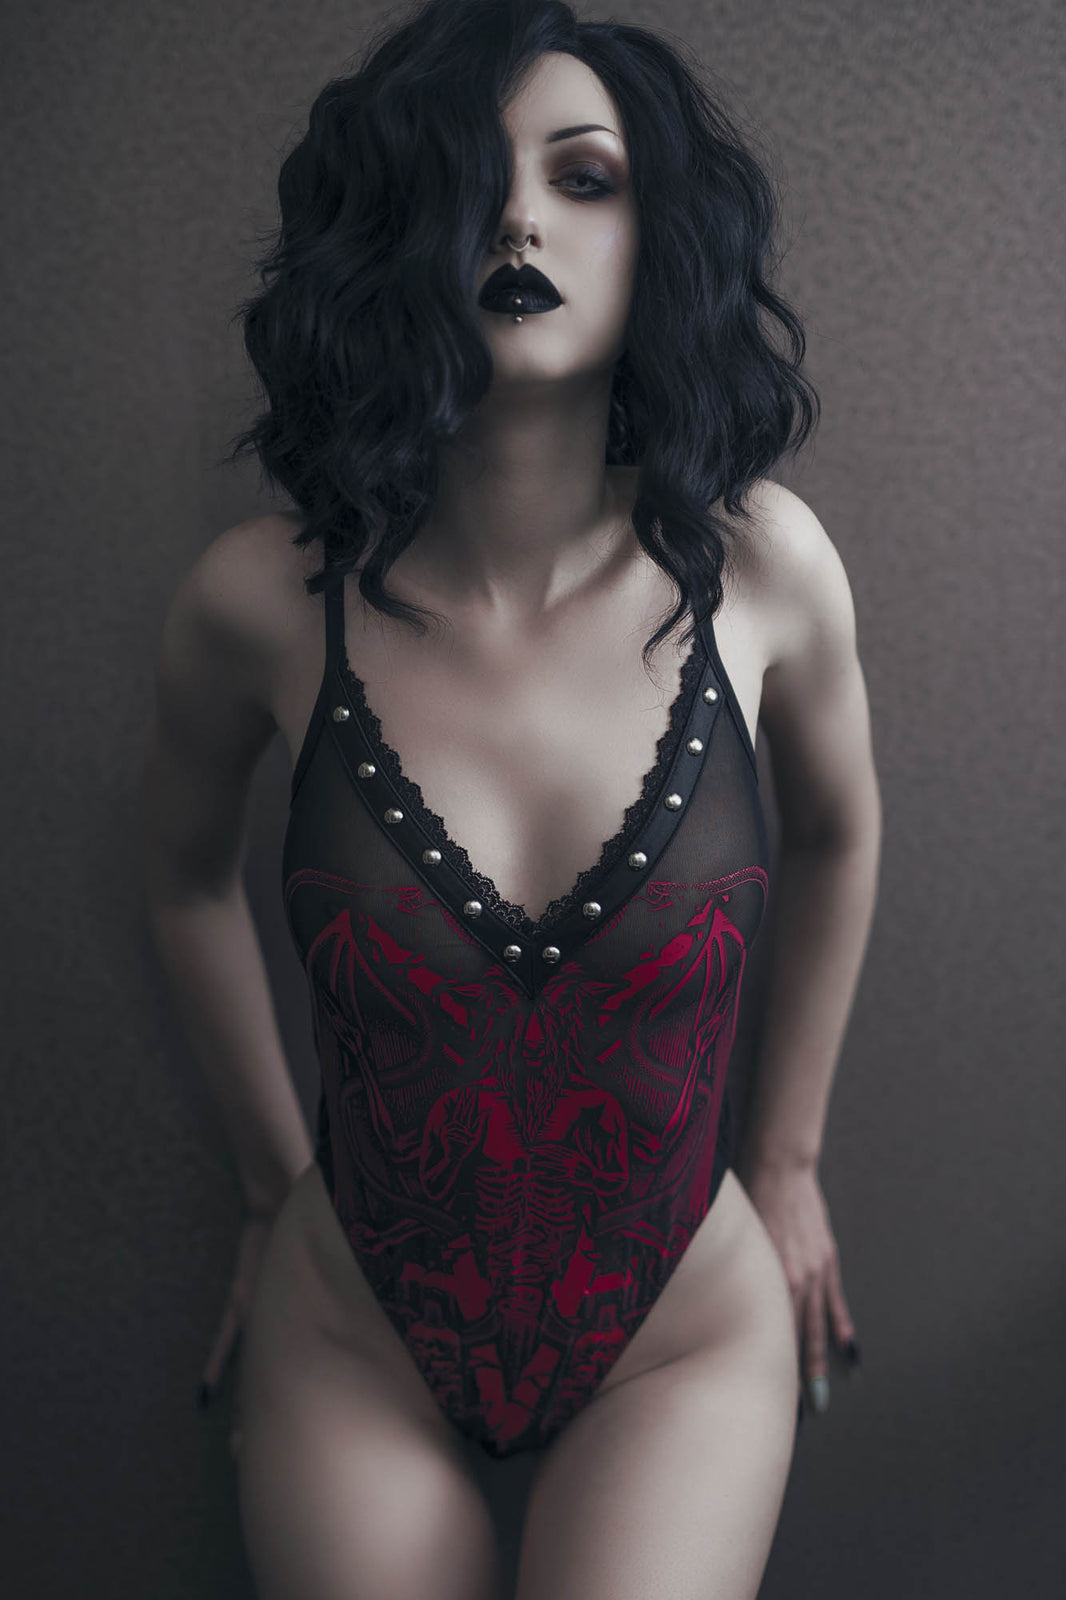 Your Highness Bodysuit